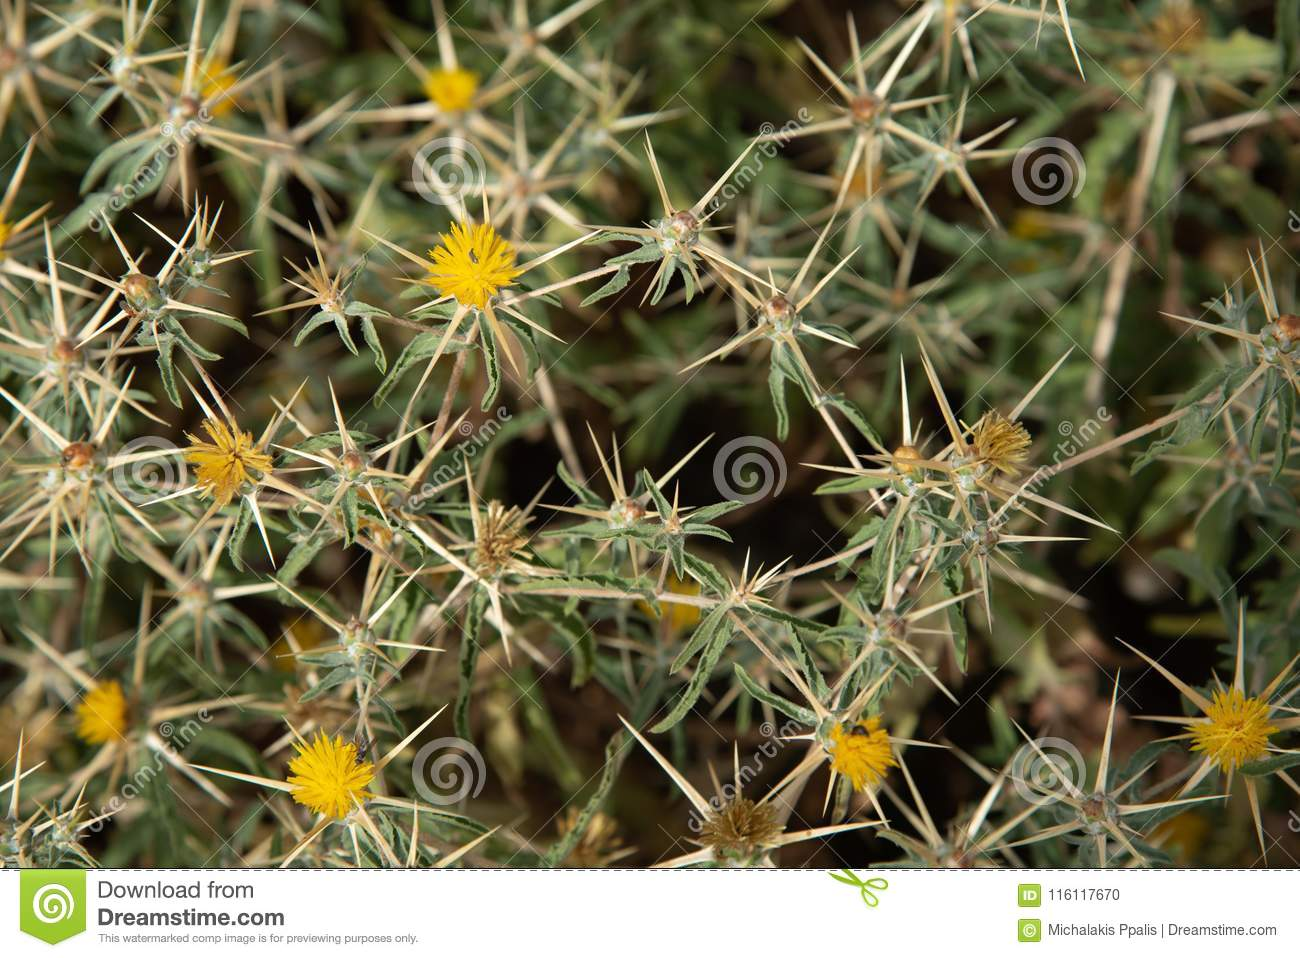 Nature Background From Thorn Plants With Yellow Flowers Stock Photo